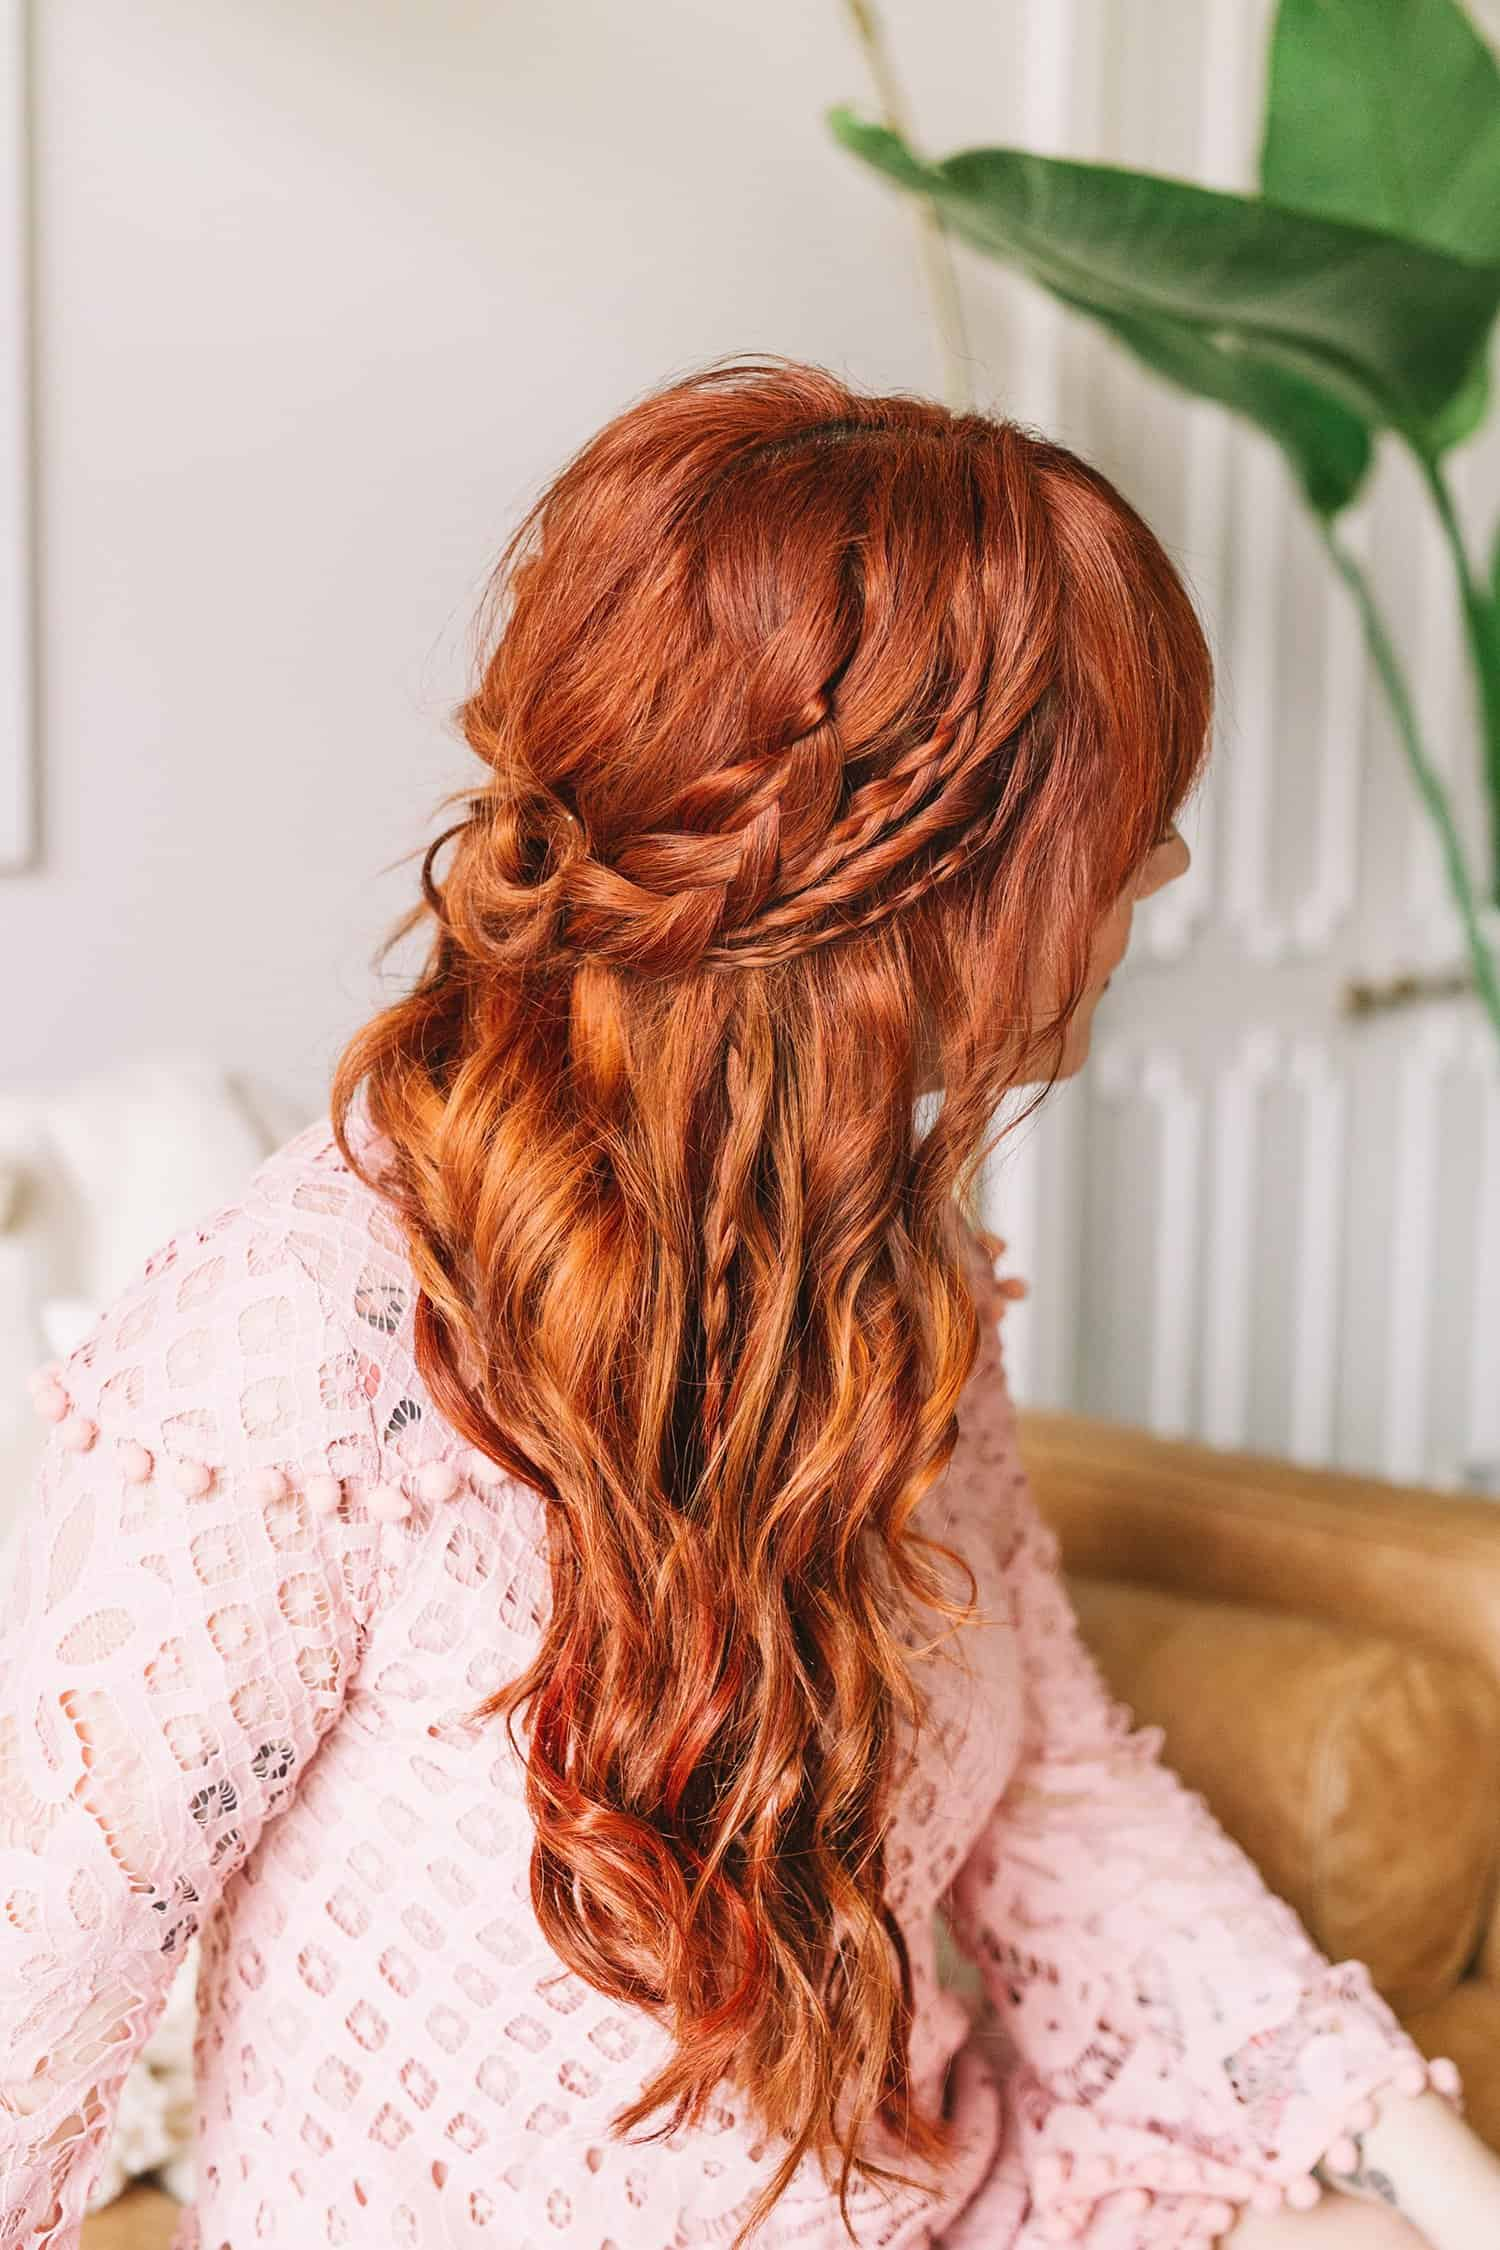 Braided wavy boho hair tutorial a beautiful mess lately i have been working on adding more variety to my hair routine i typically wear my go to style but i have been trying to mix it up a baditri Choice Image